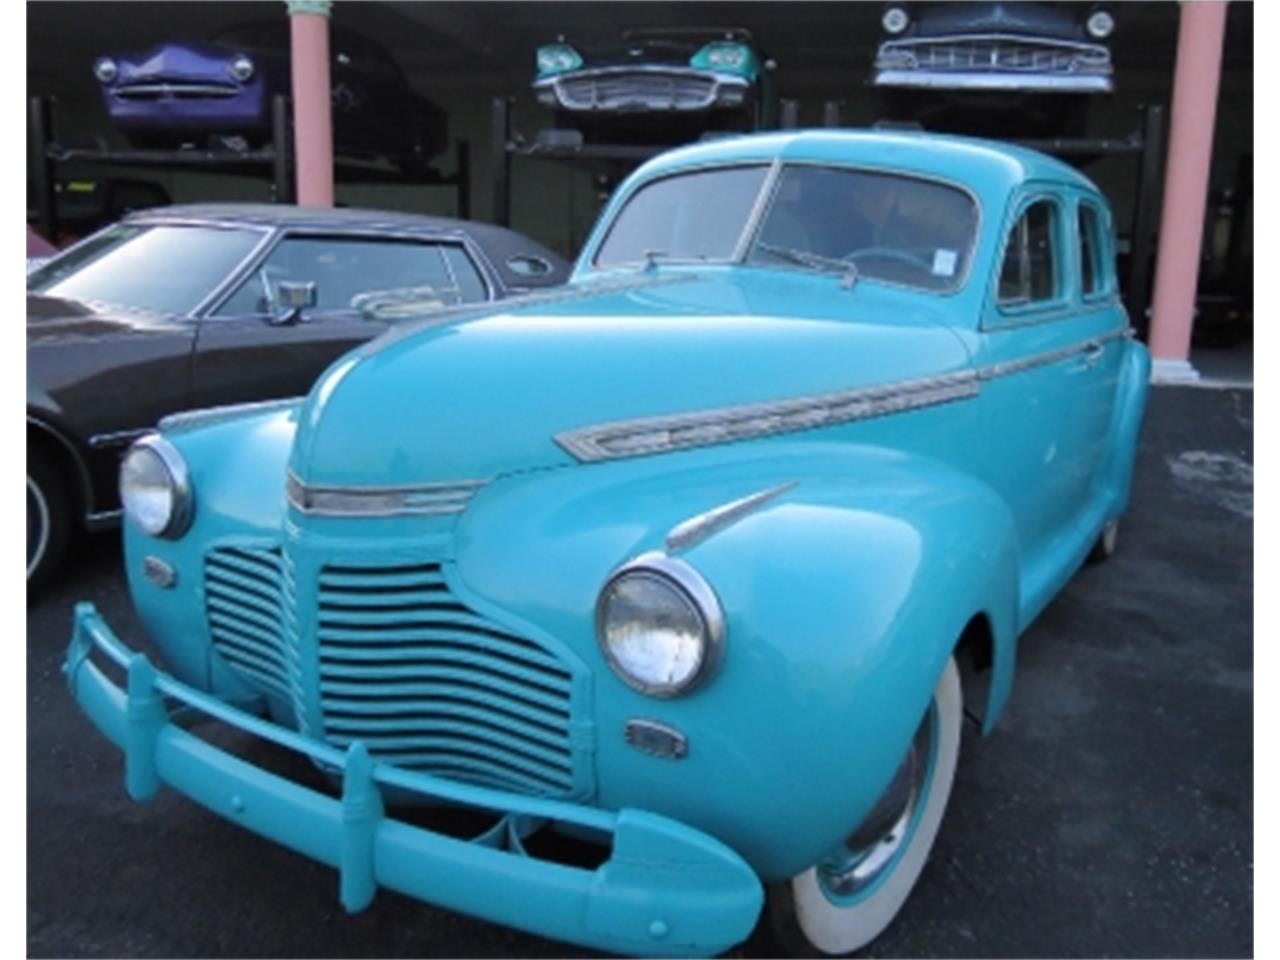 Large Picture of 1941 Chevrolet Sedan located in Florida - $9,500.00 - D690